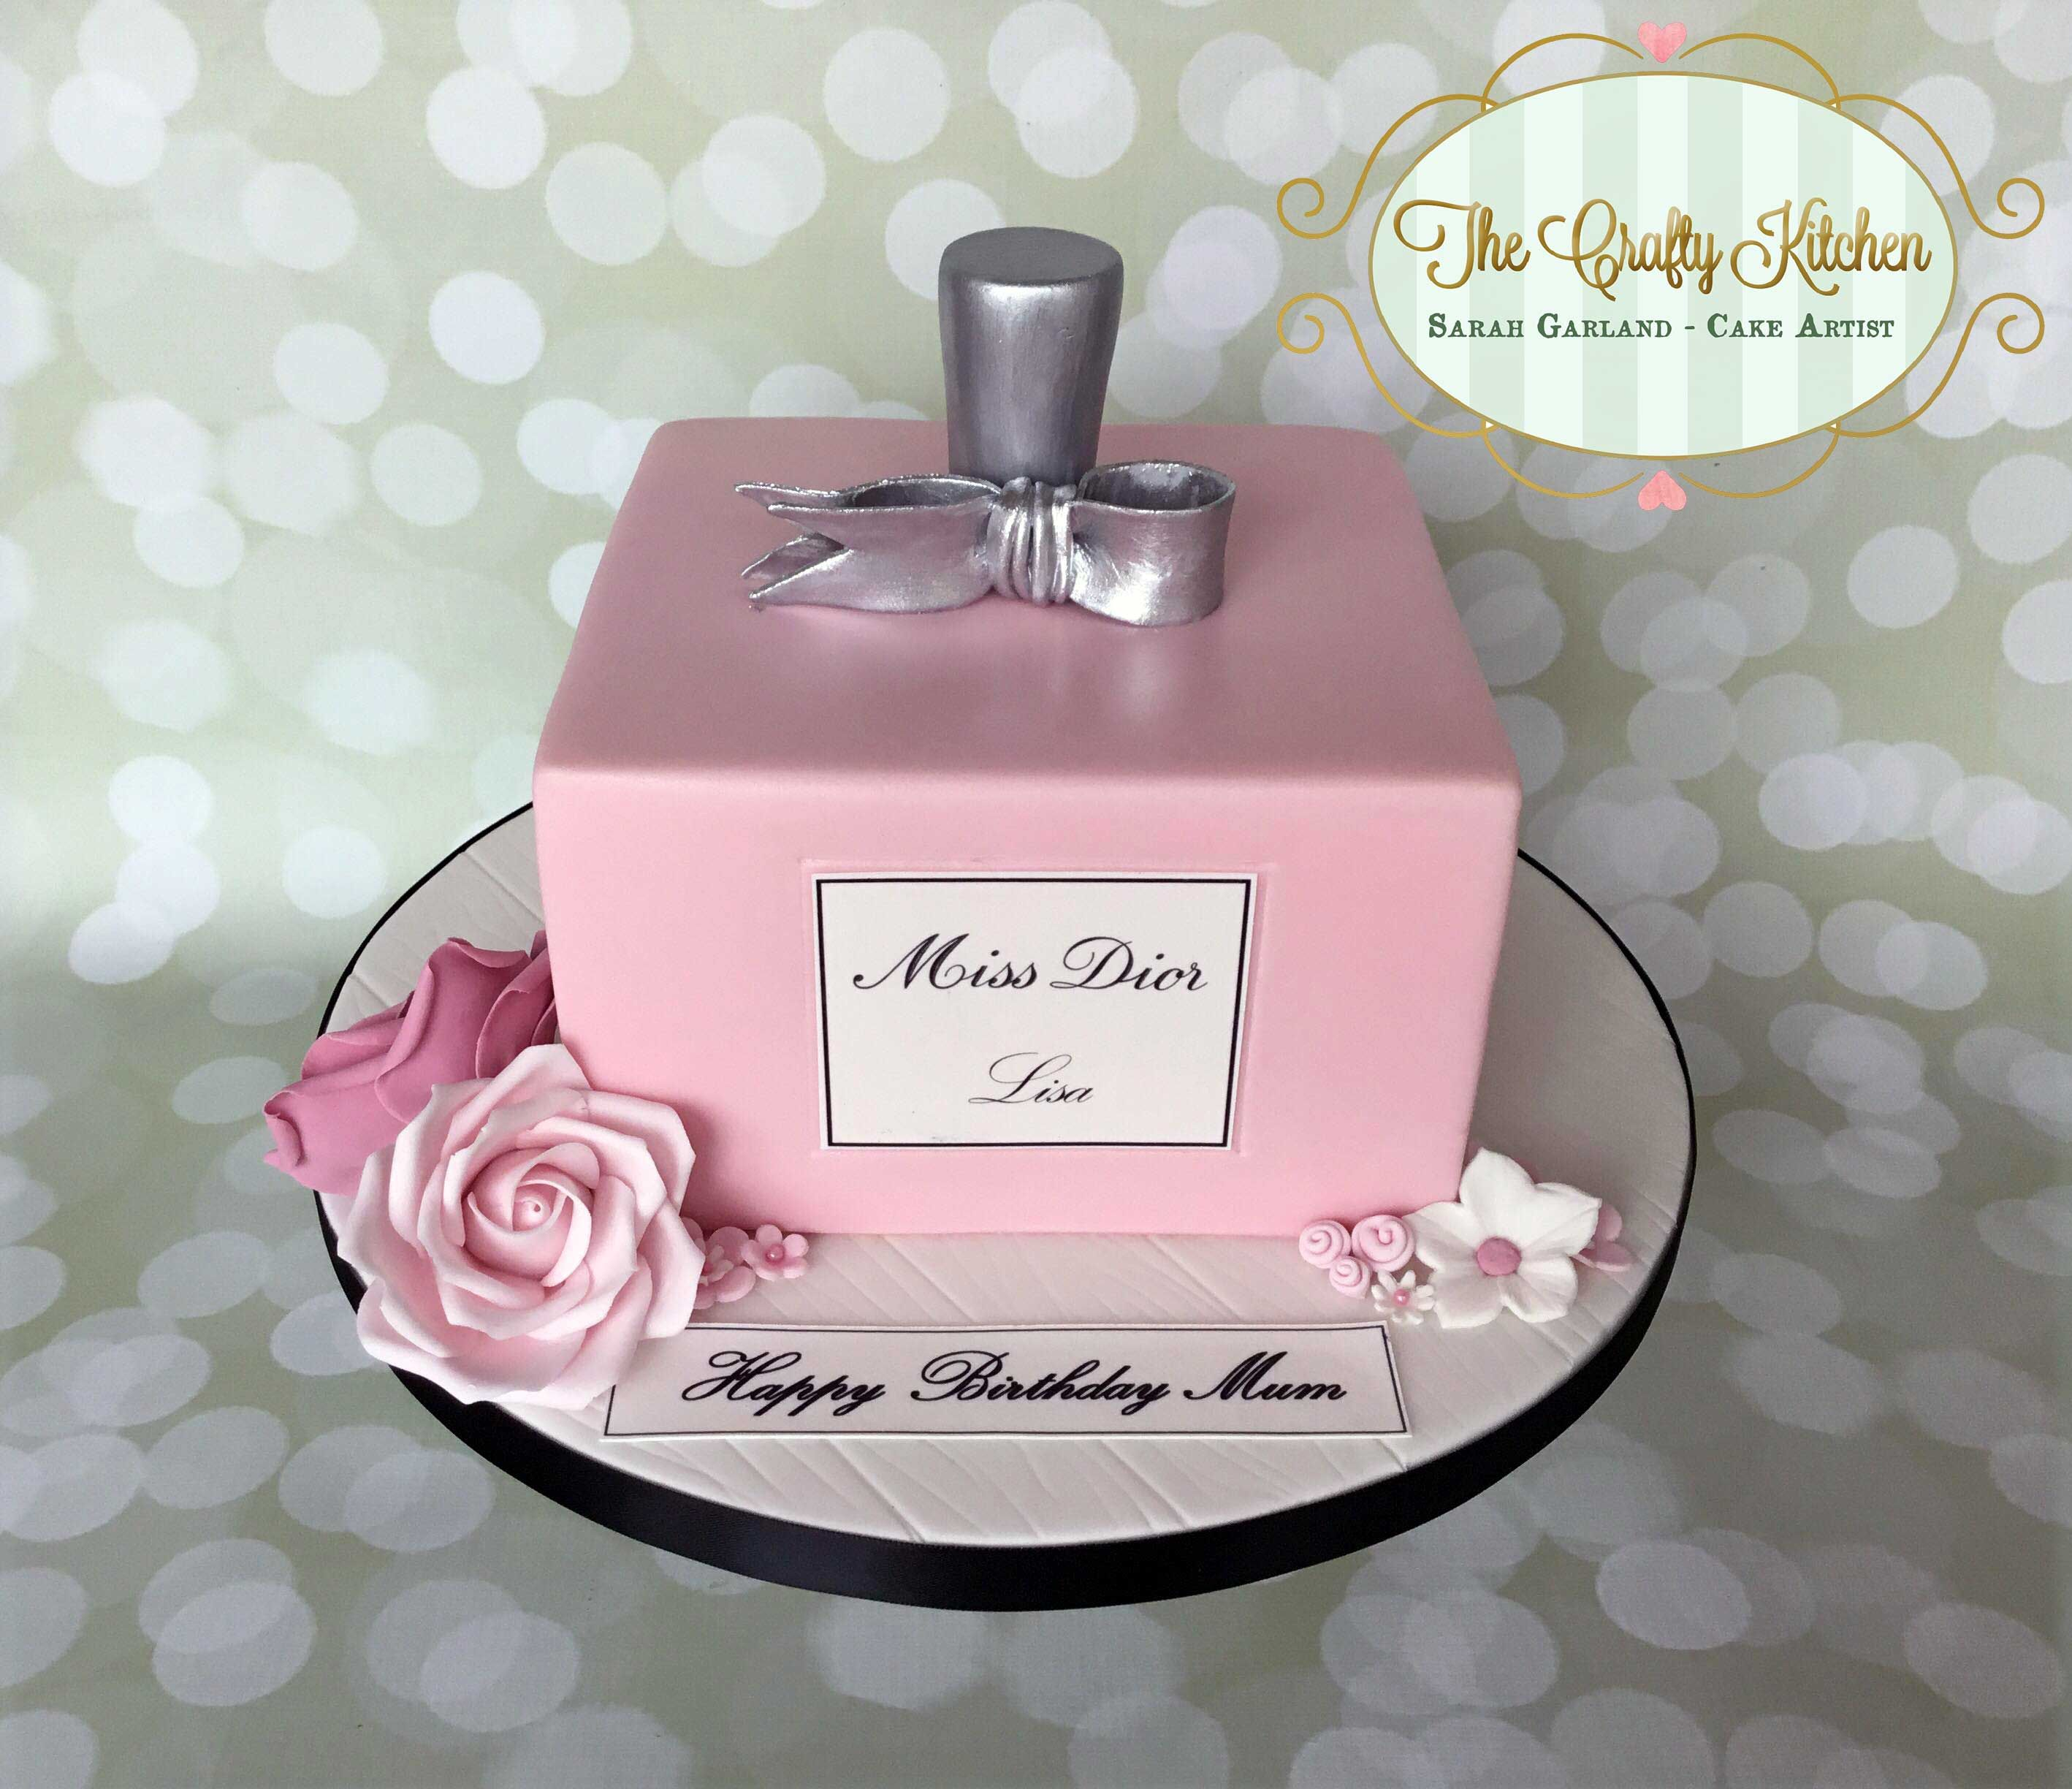 Miss Dior Perfume Bottle Cake Missdior Perfume Ladies Cake